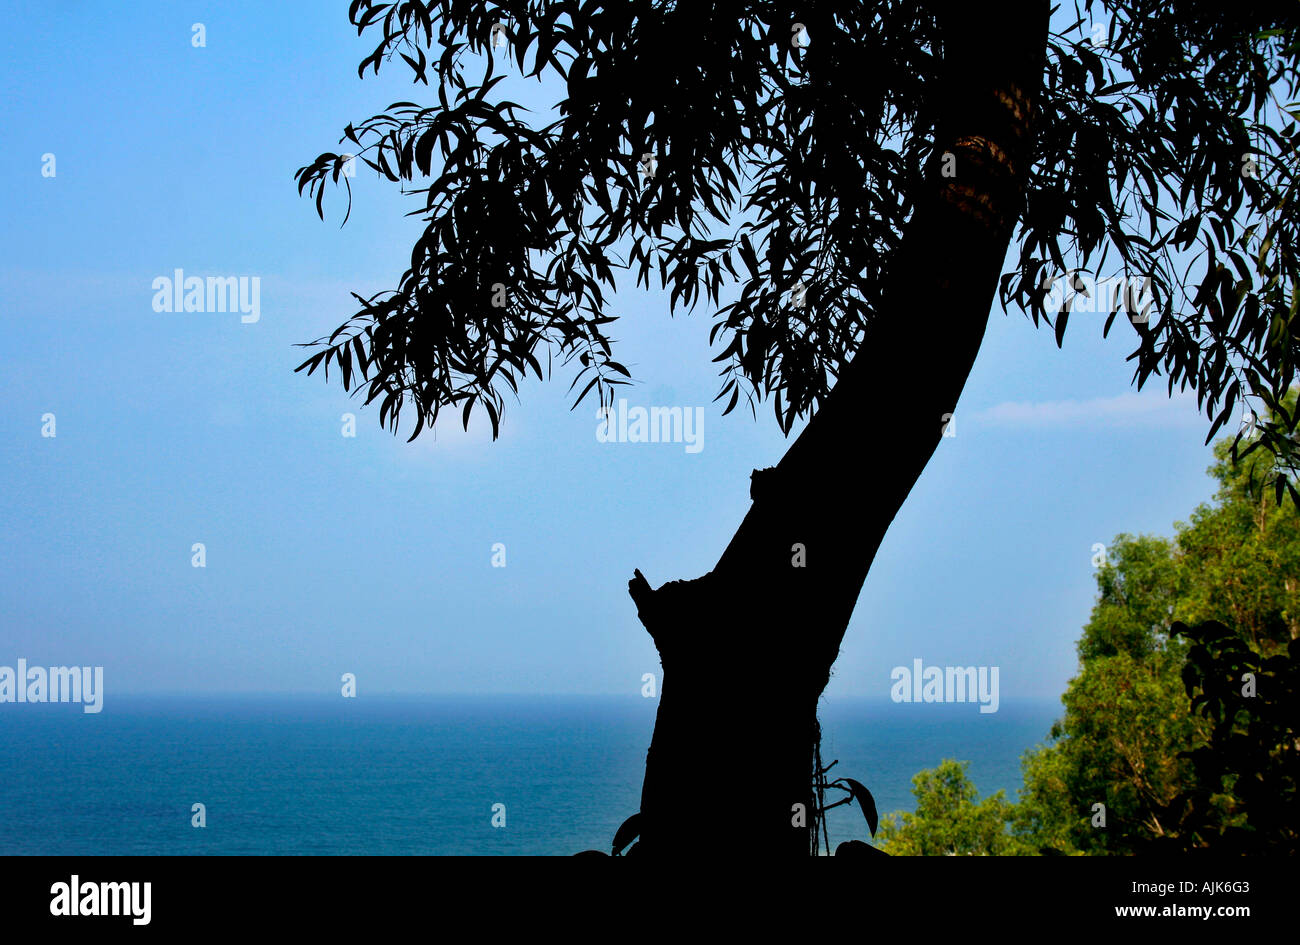 The silhouette image of a tree with the blue ocean as backdrop - Stock Image